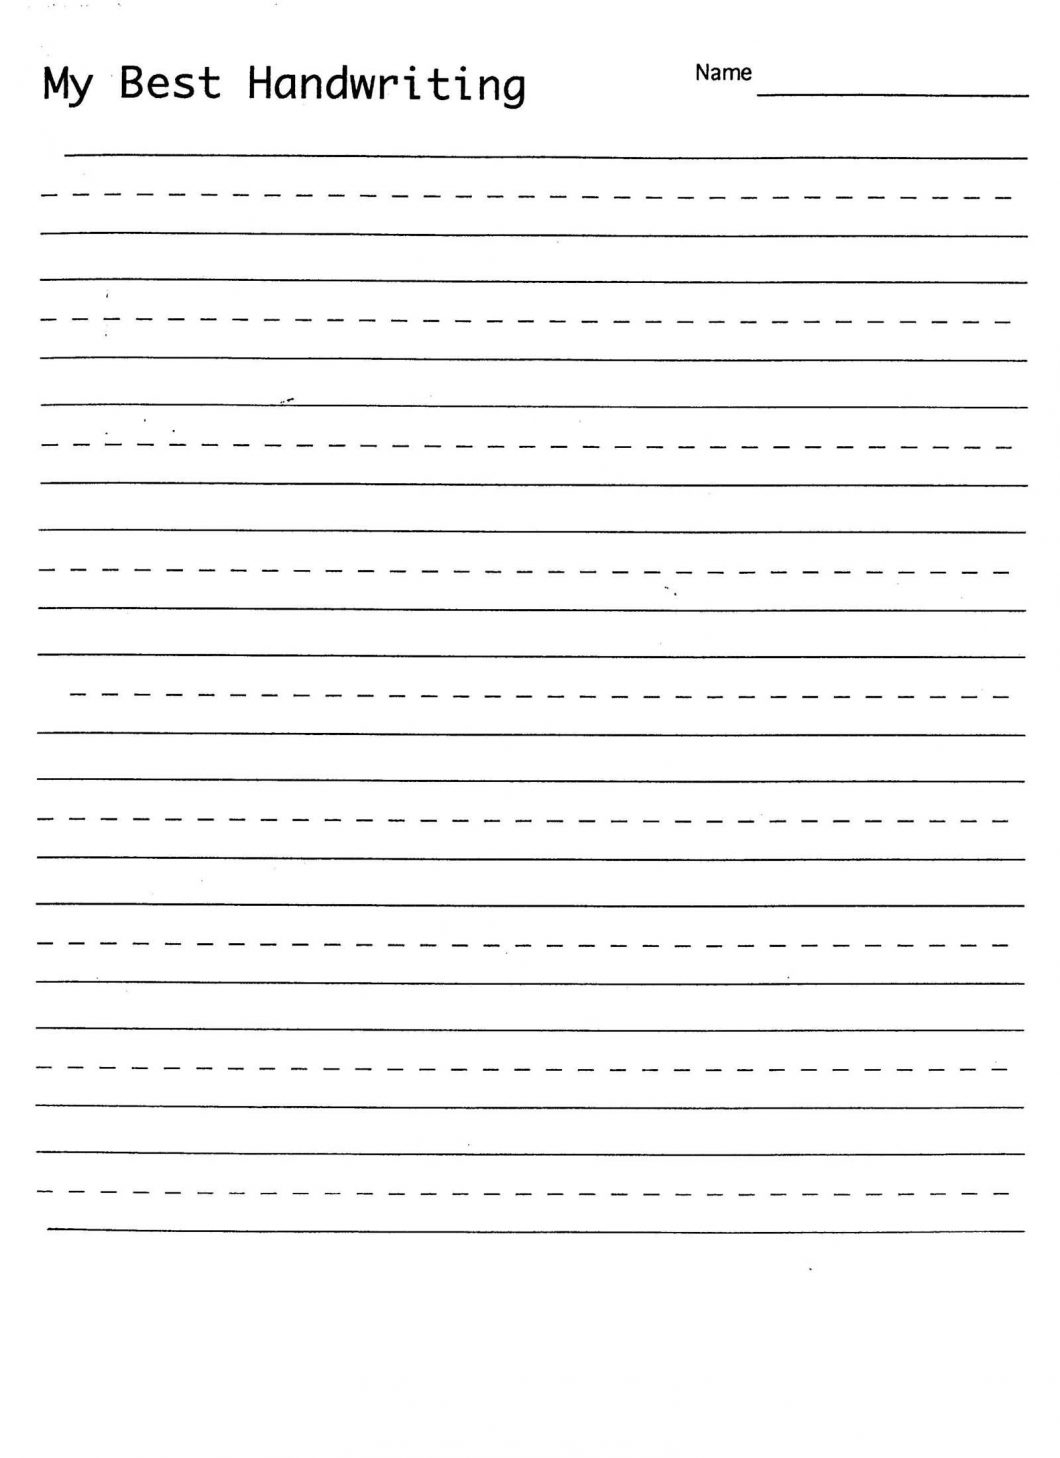 Writing Practice Sheets For Preschoolers – With Printing - Free Printable Practice Name Writing Sheets